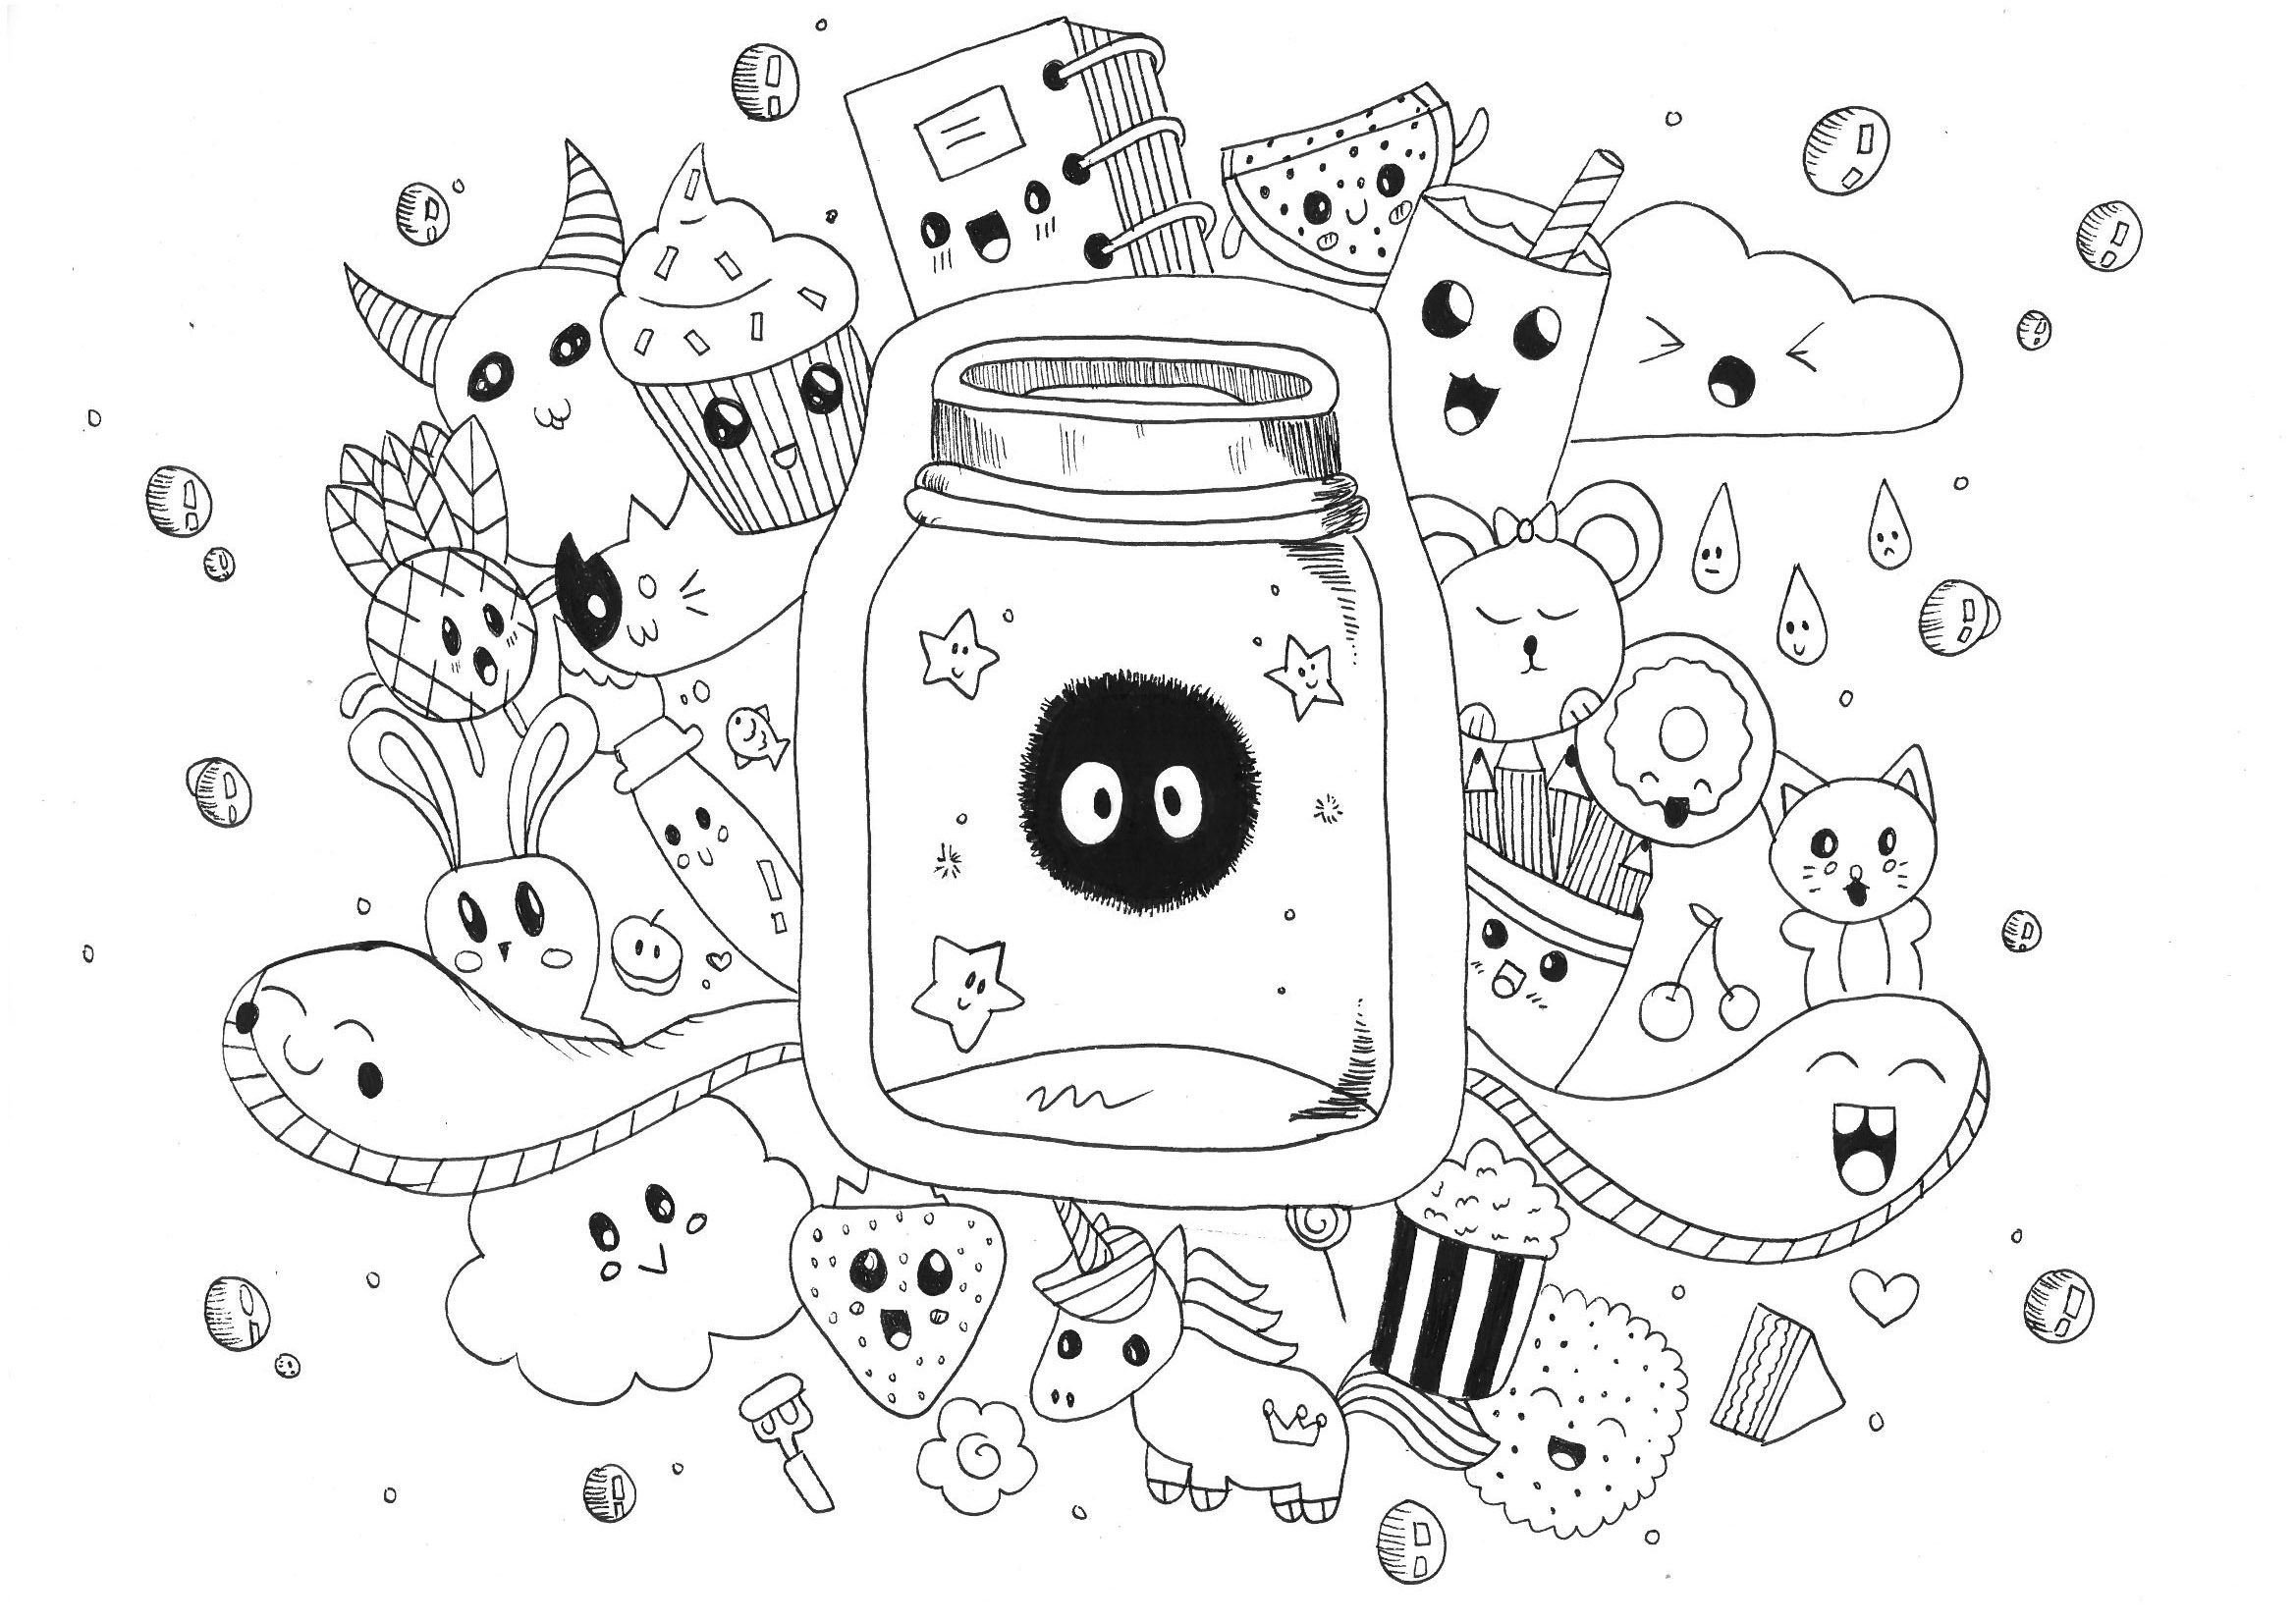 doodle coloring pages free colouring pages lj knight pages doodle coloring